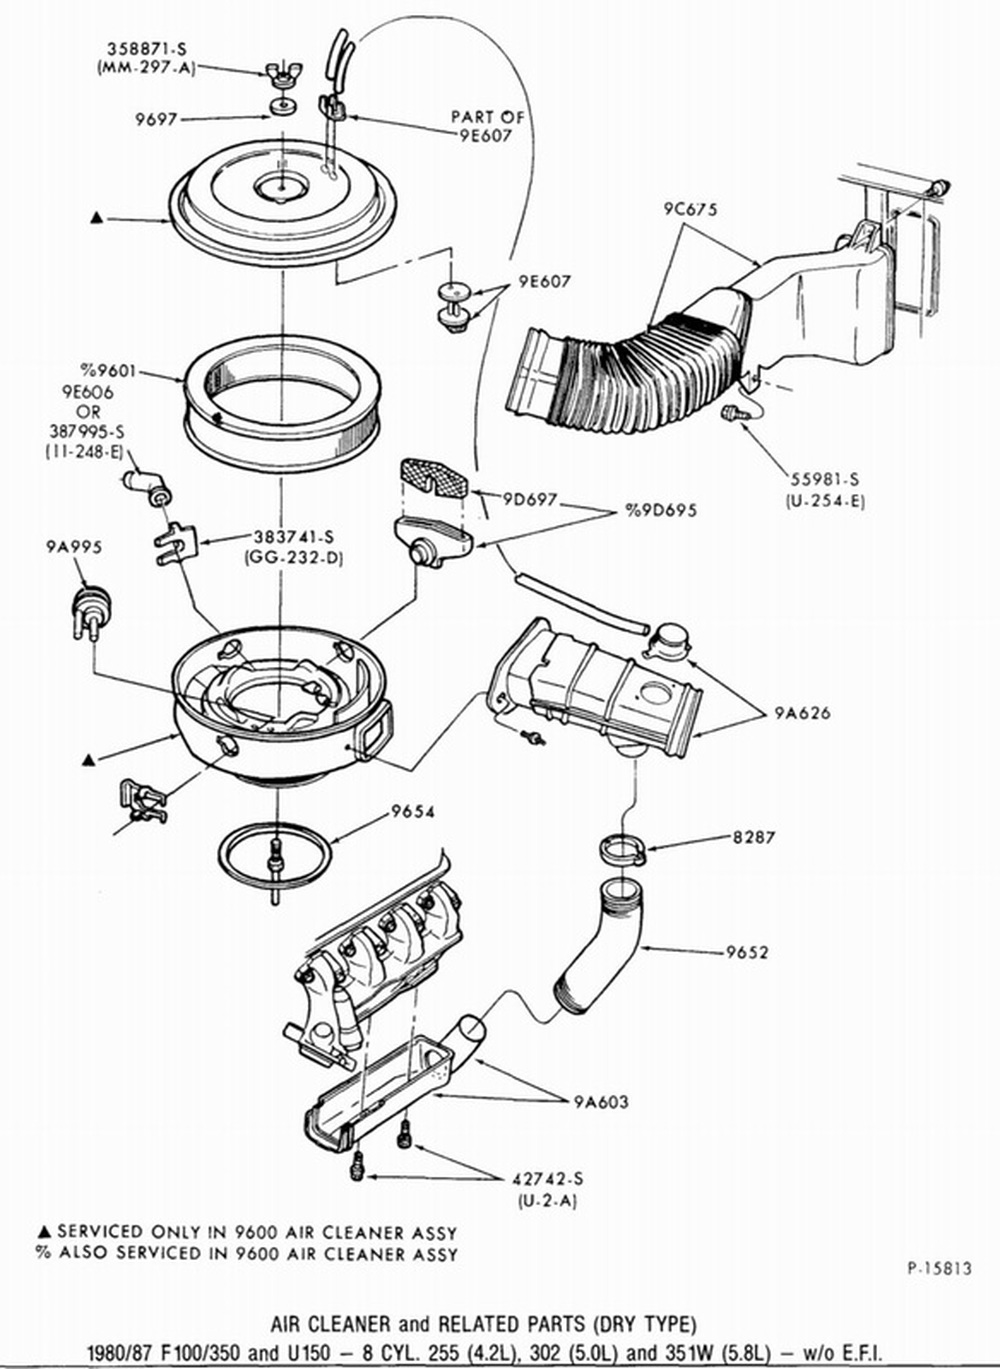 ford wiring diagram 1993 f350 7 3 sel car wiring diagrams